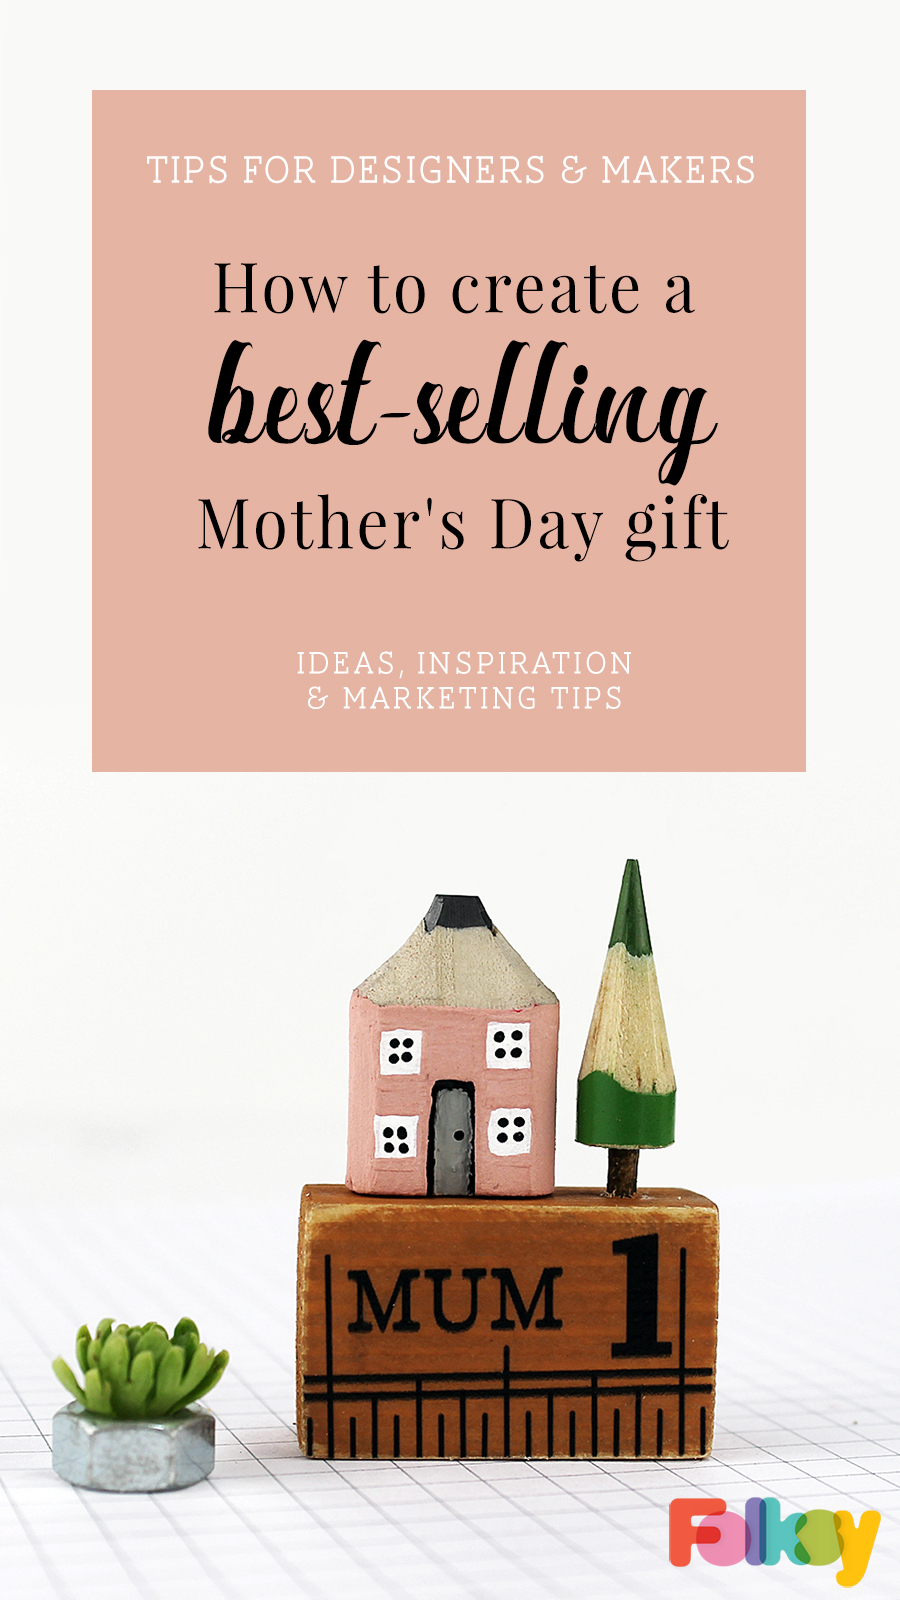 How to create a best-selling Mother's Day gift - ideas